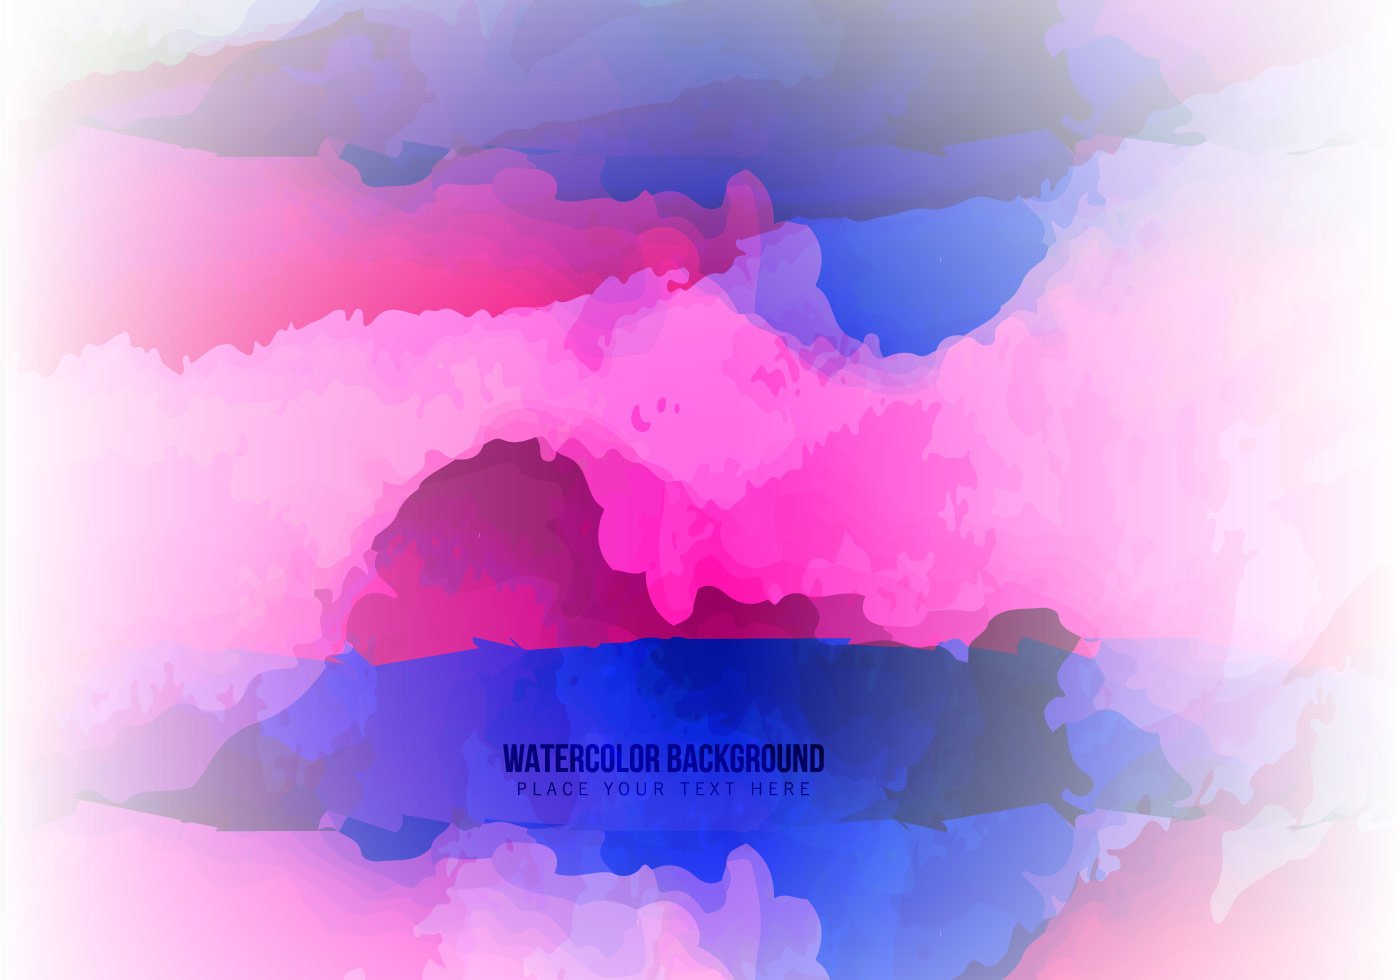 Abstract Watercolor Stain Download Free Vector Art Stock Graphics The Wetbrush Mossaics Starburst Images